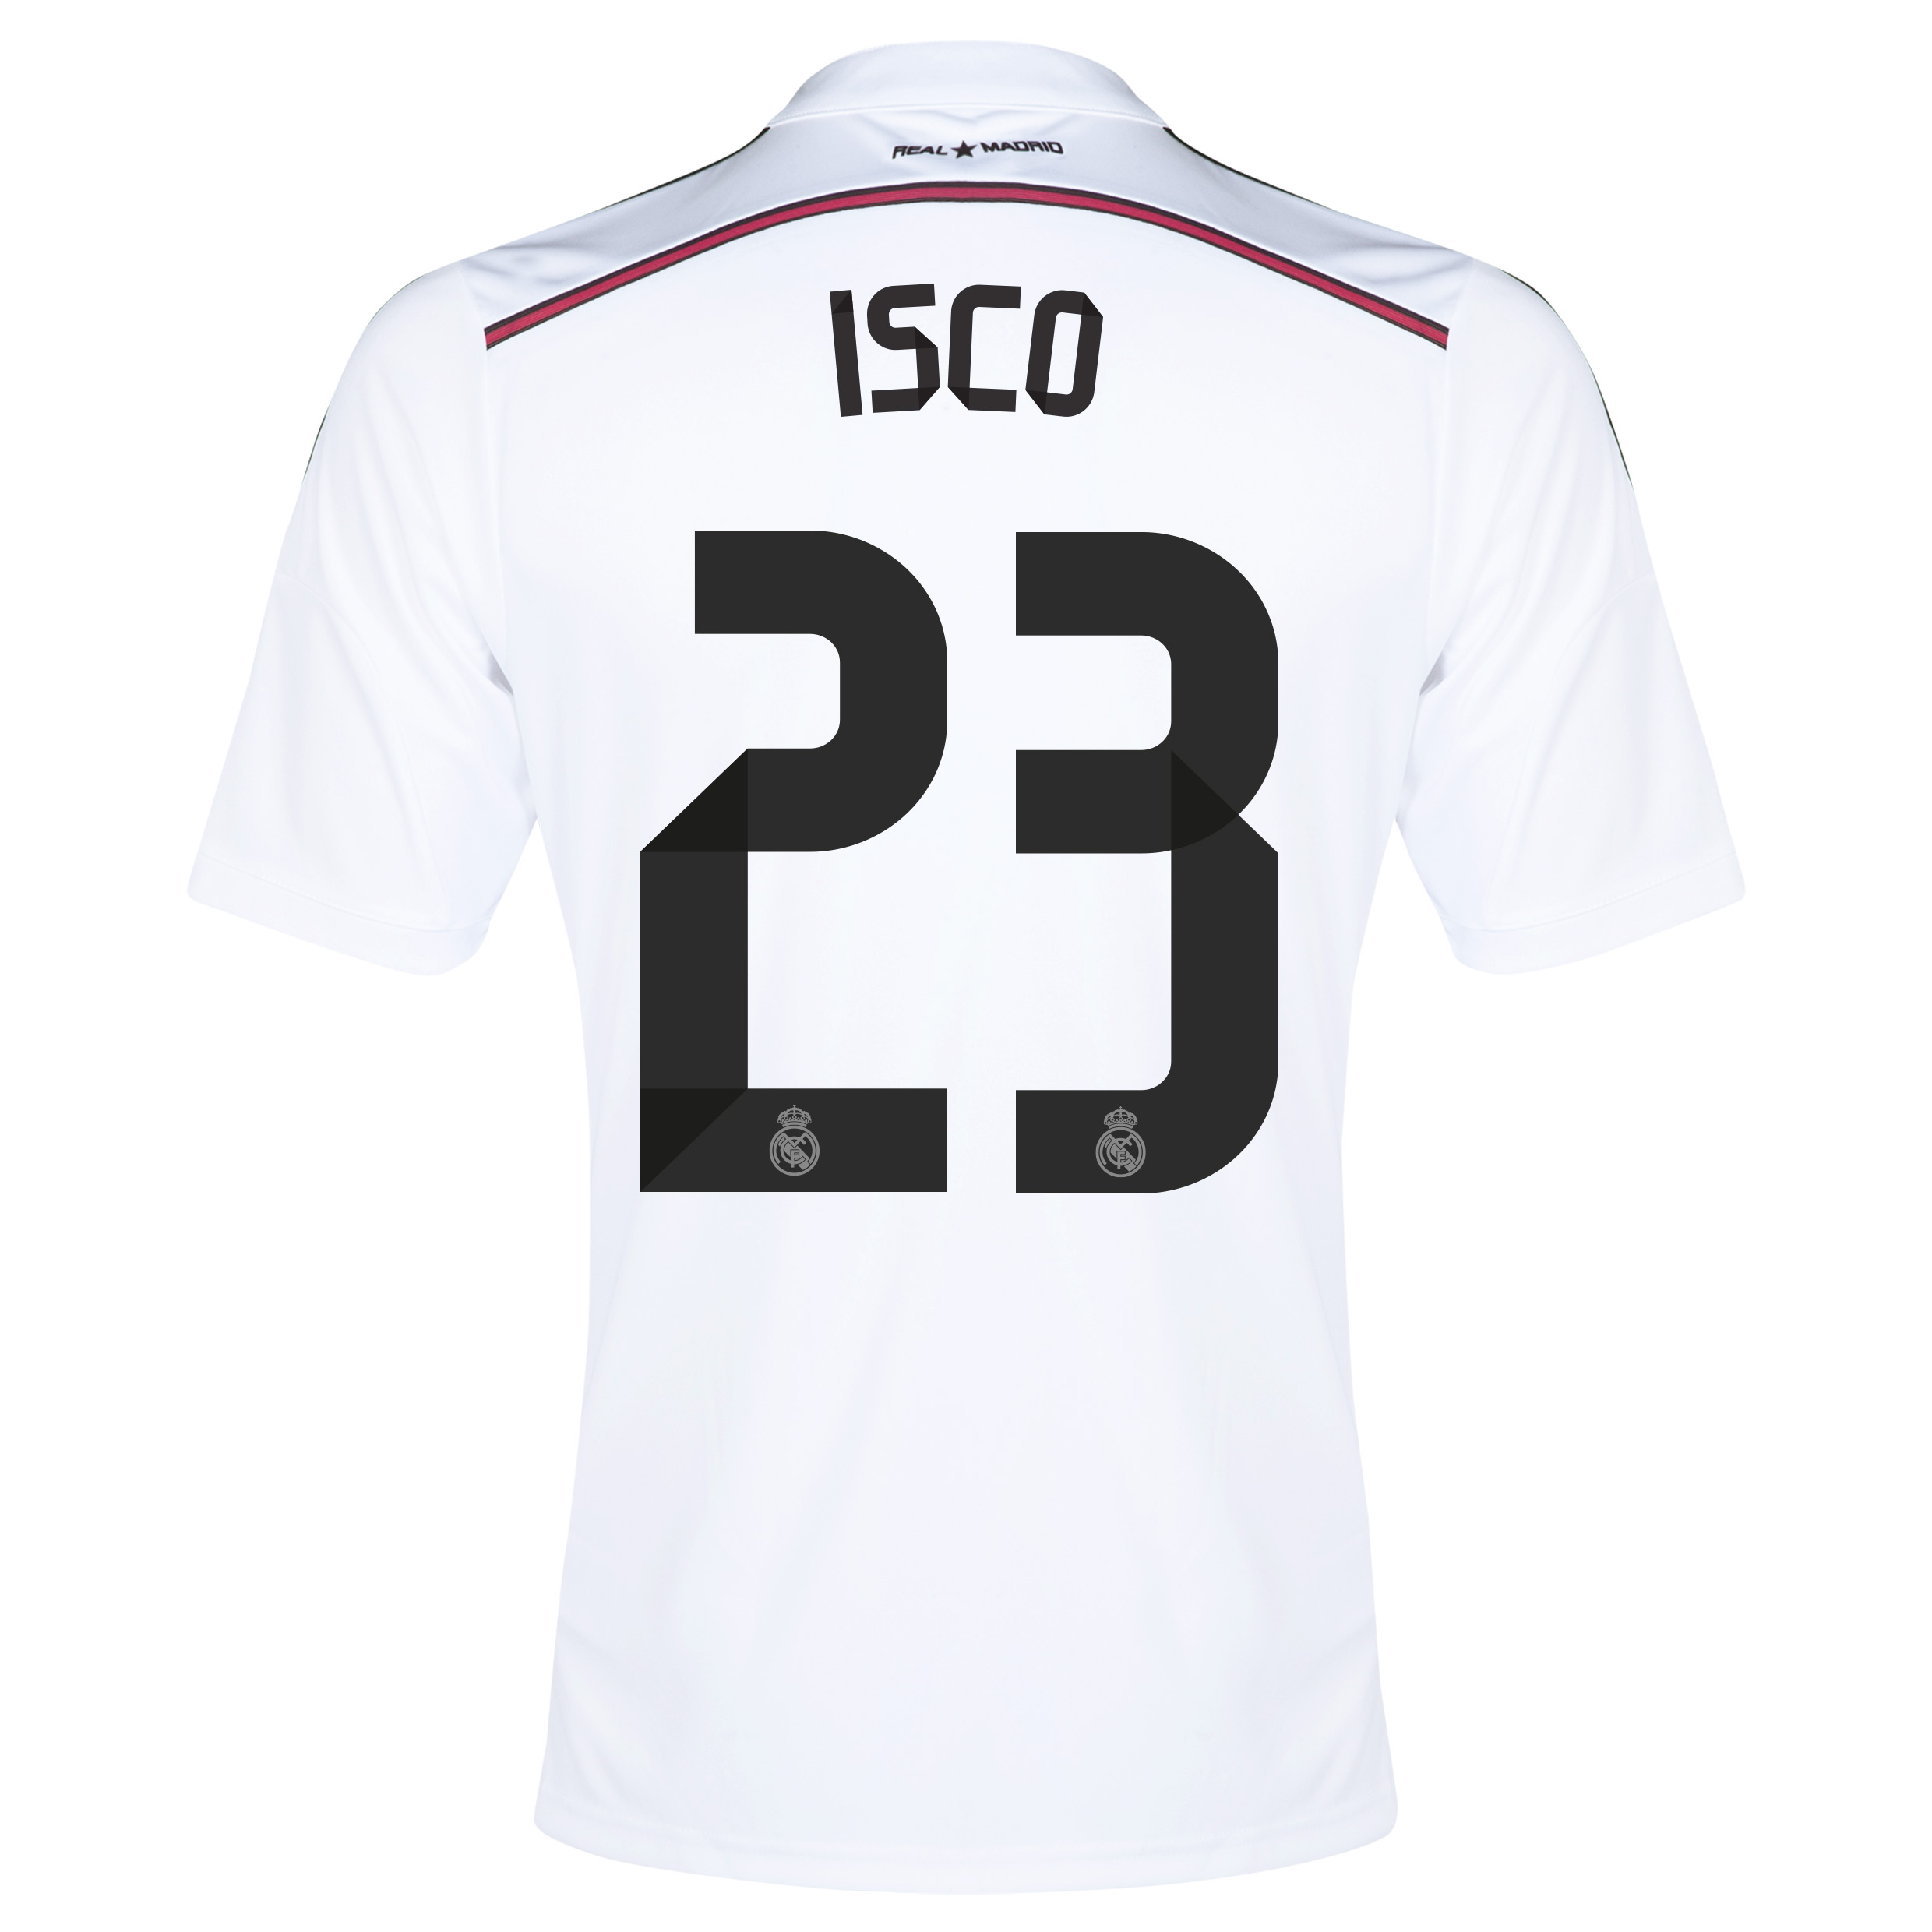 Real Madrid Home Shirt 2014/15 with Isco 23 printing